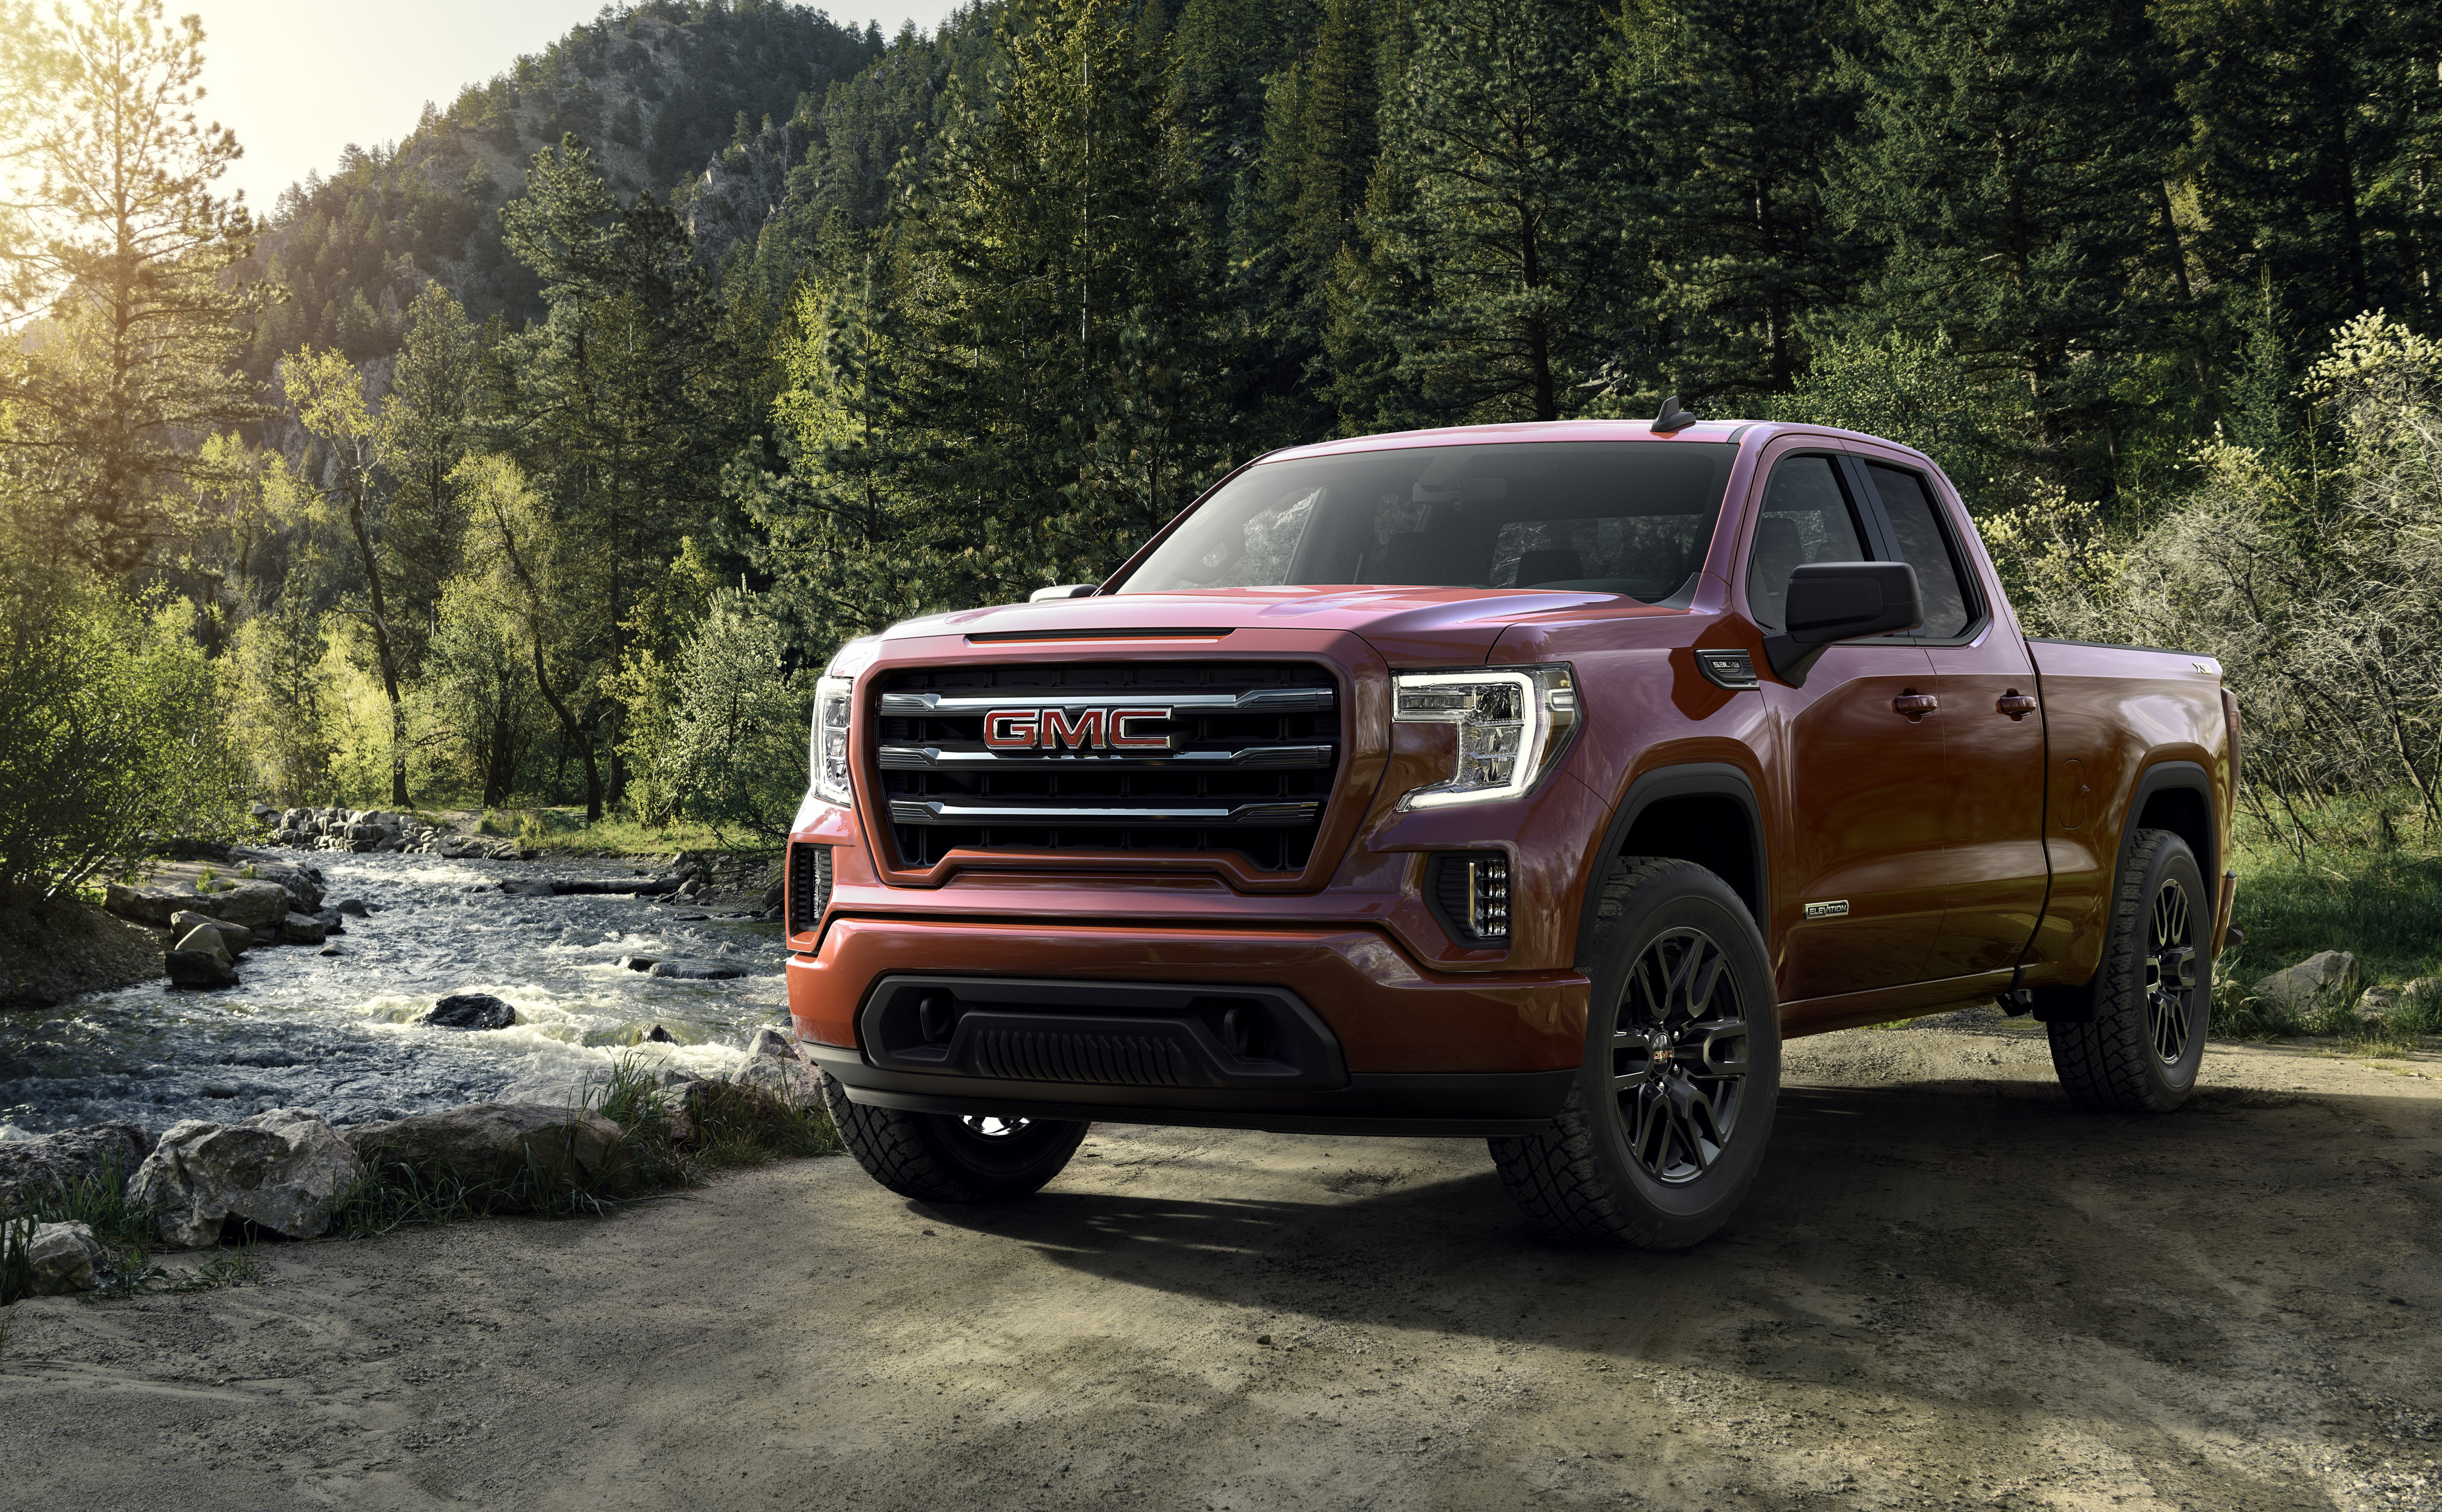 Gmc Sierra 1500 Lease Deals Prices Cicero Ny